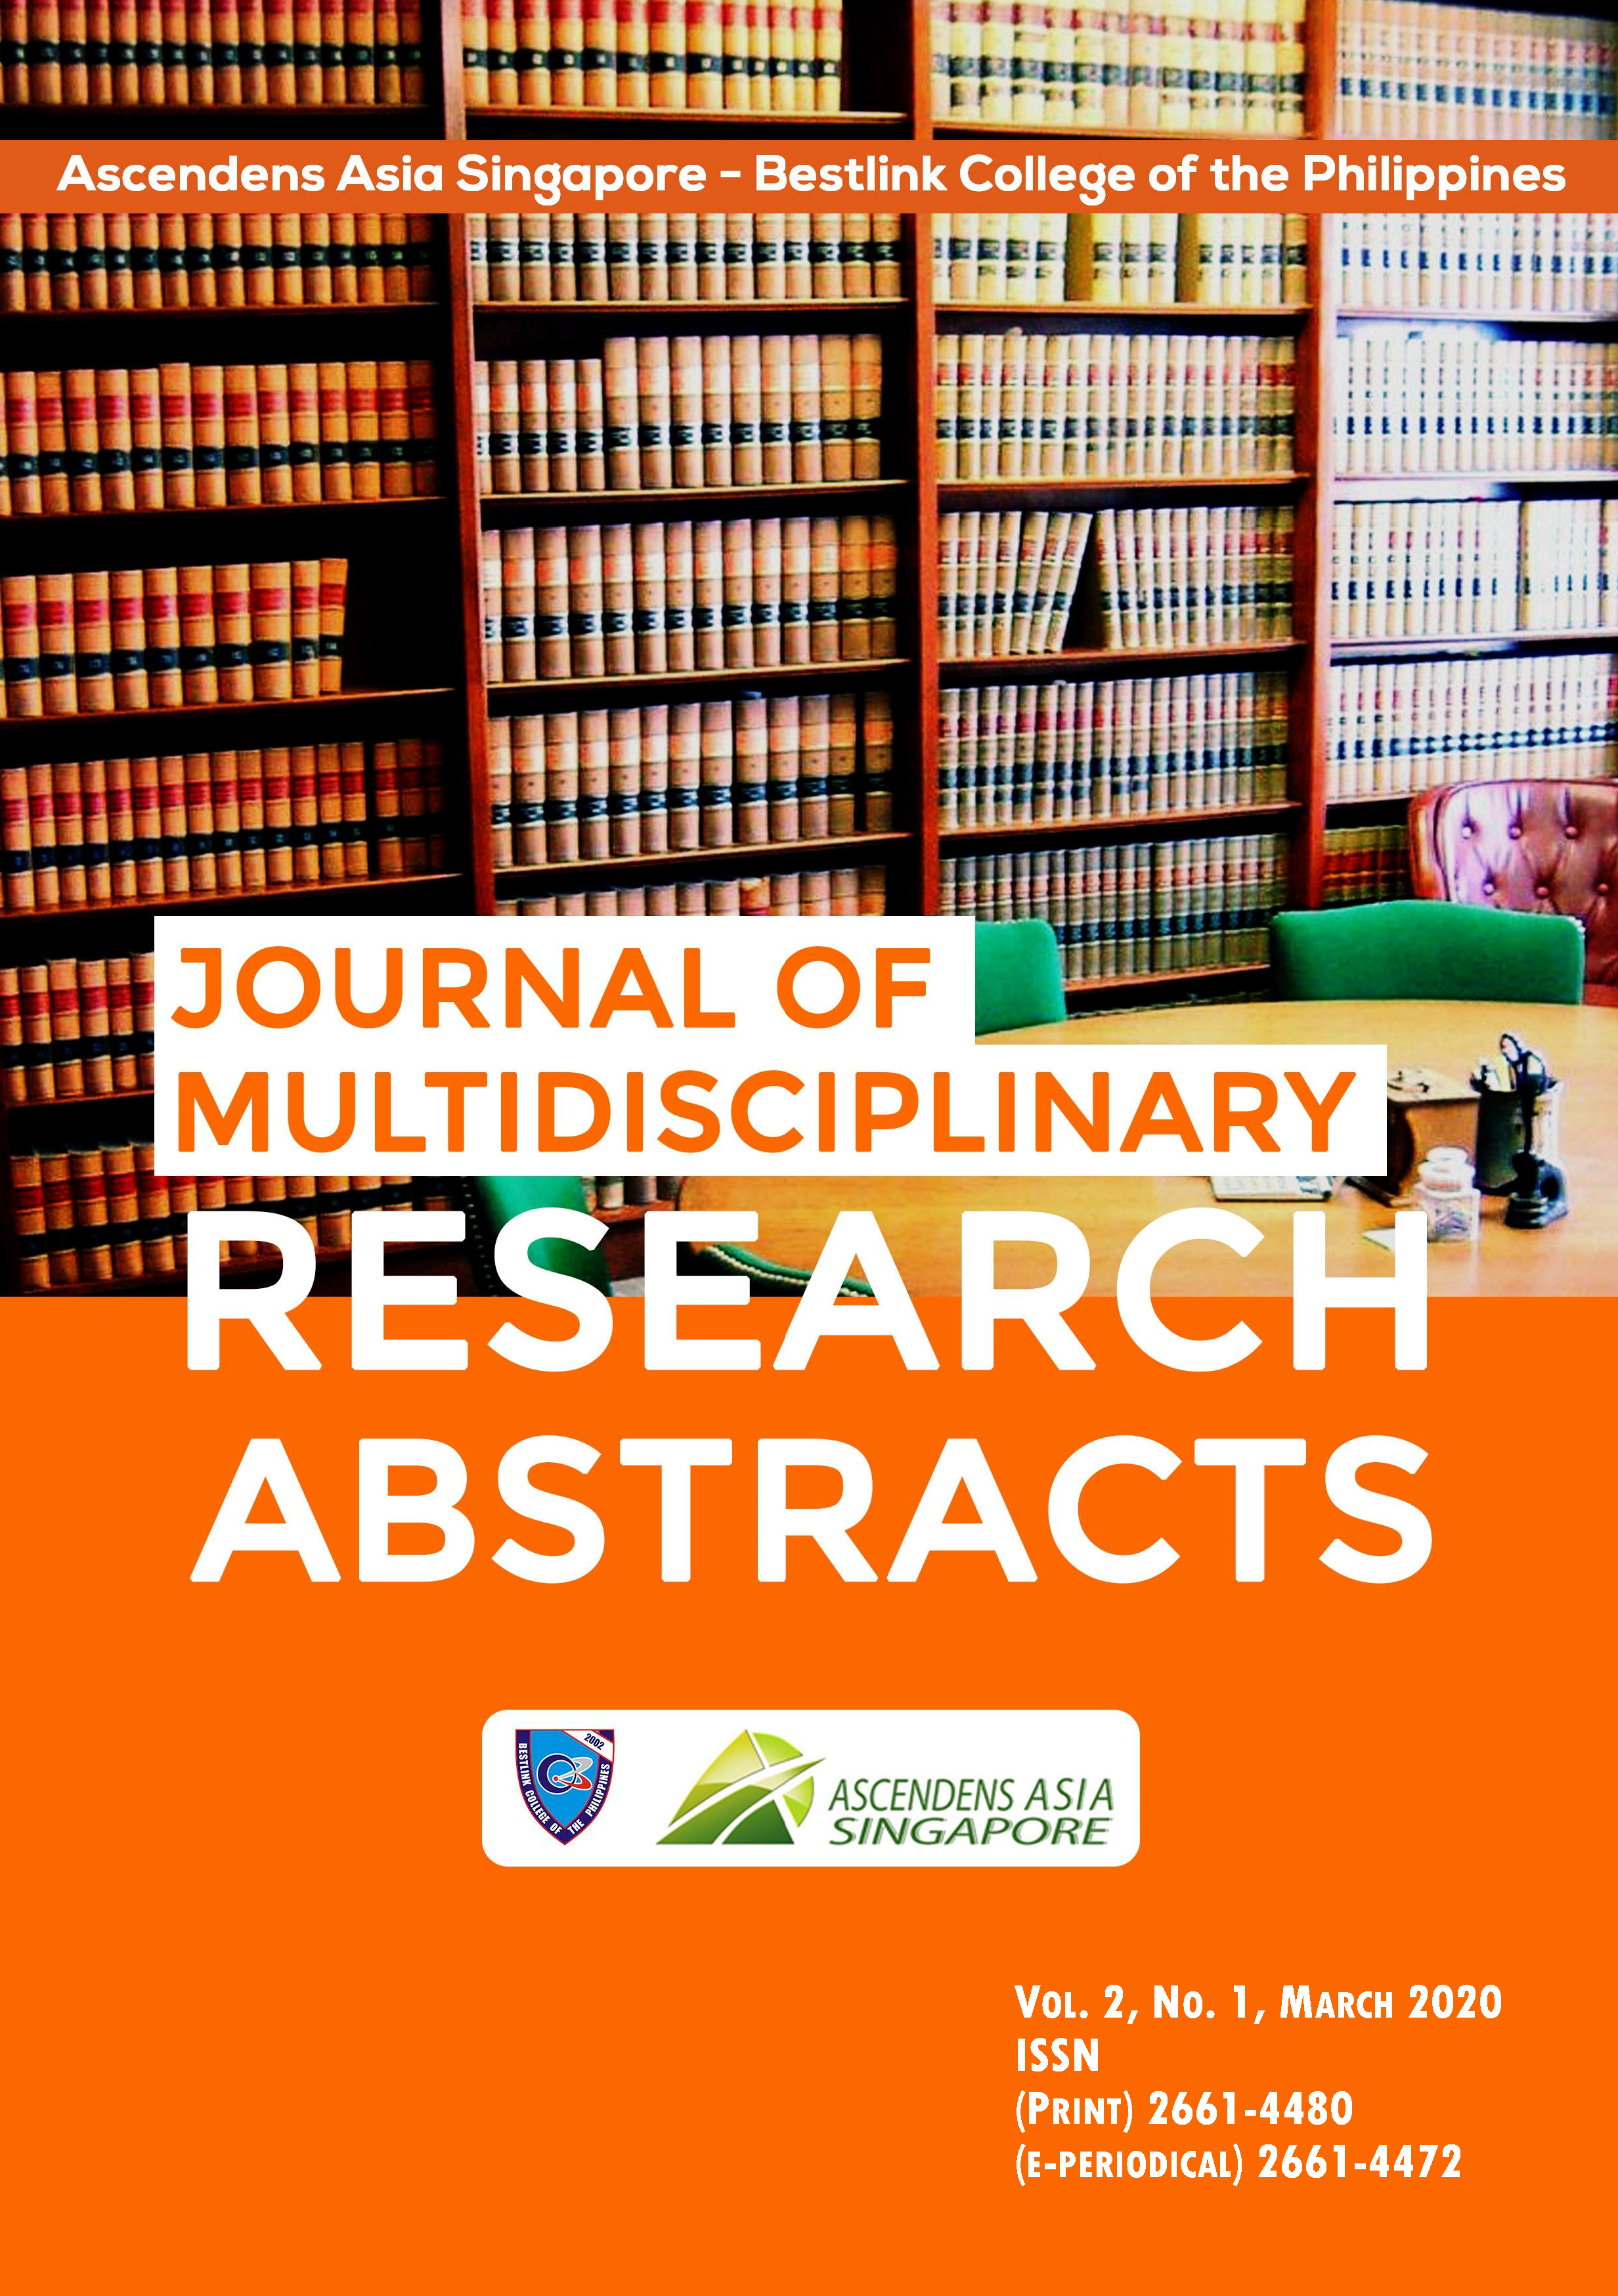 View Vol. 2 No. 1 (2020): Ascendens Asia Singapore – Bestlink College of the Philippines Journal of Multidisciplinary Research Abstracts, Vol.2, No1, March 2020